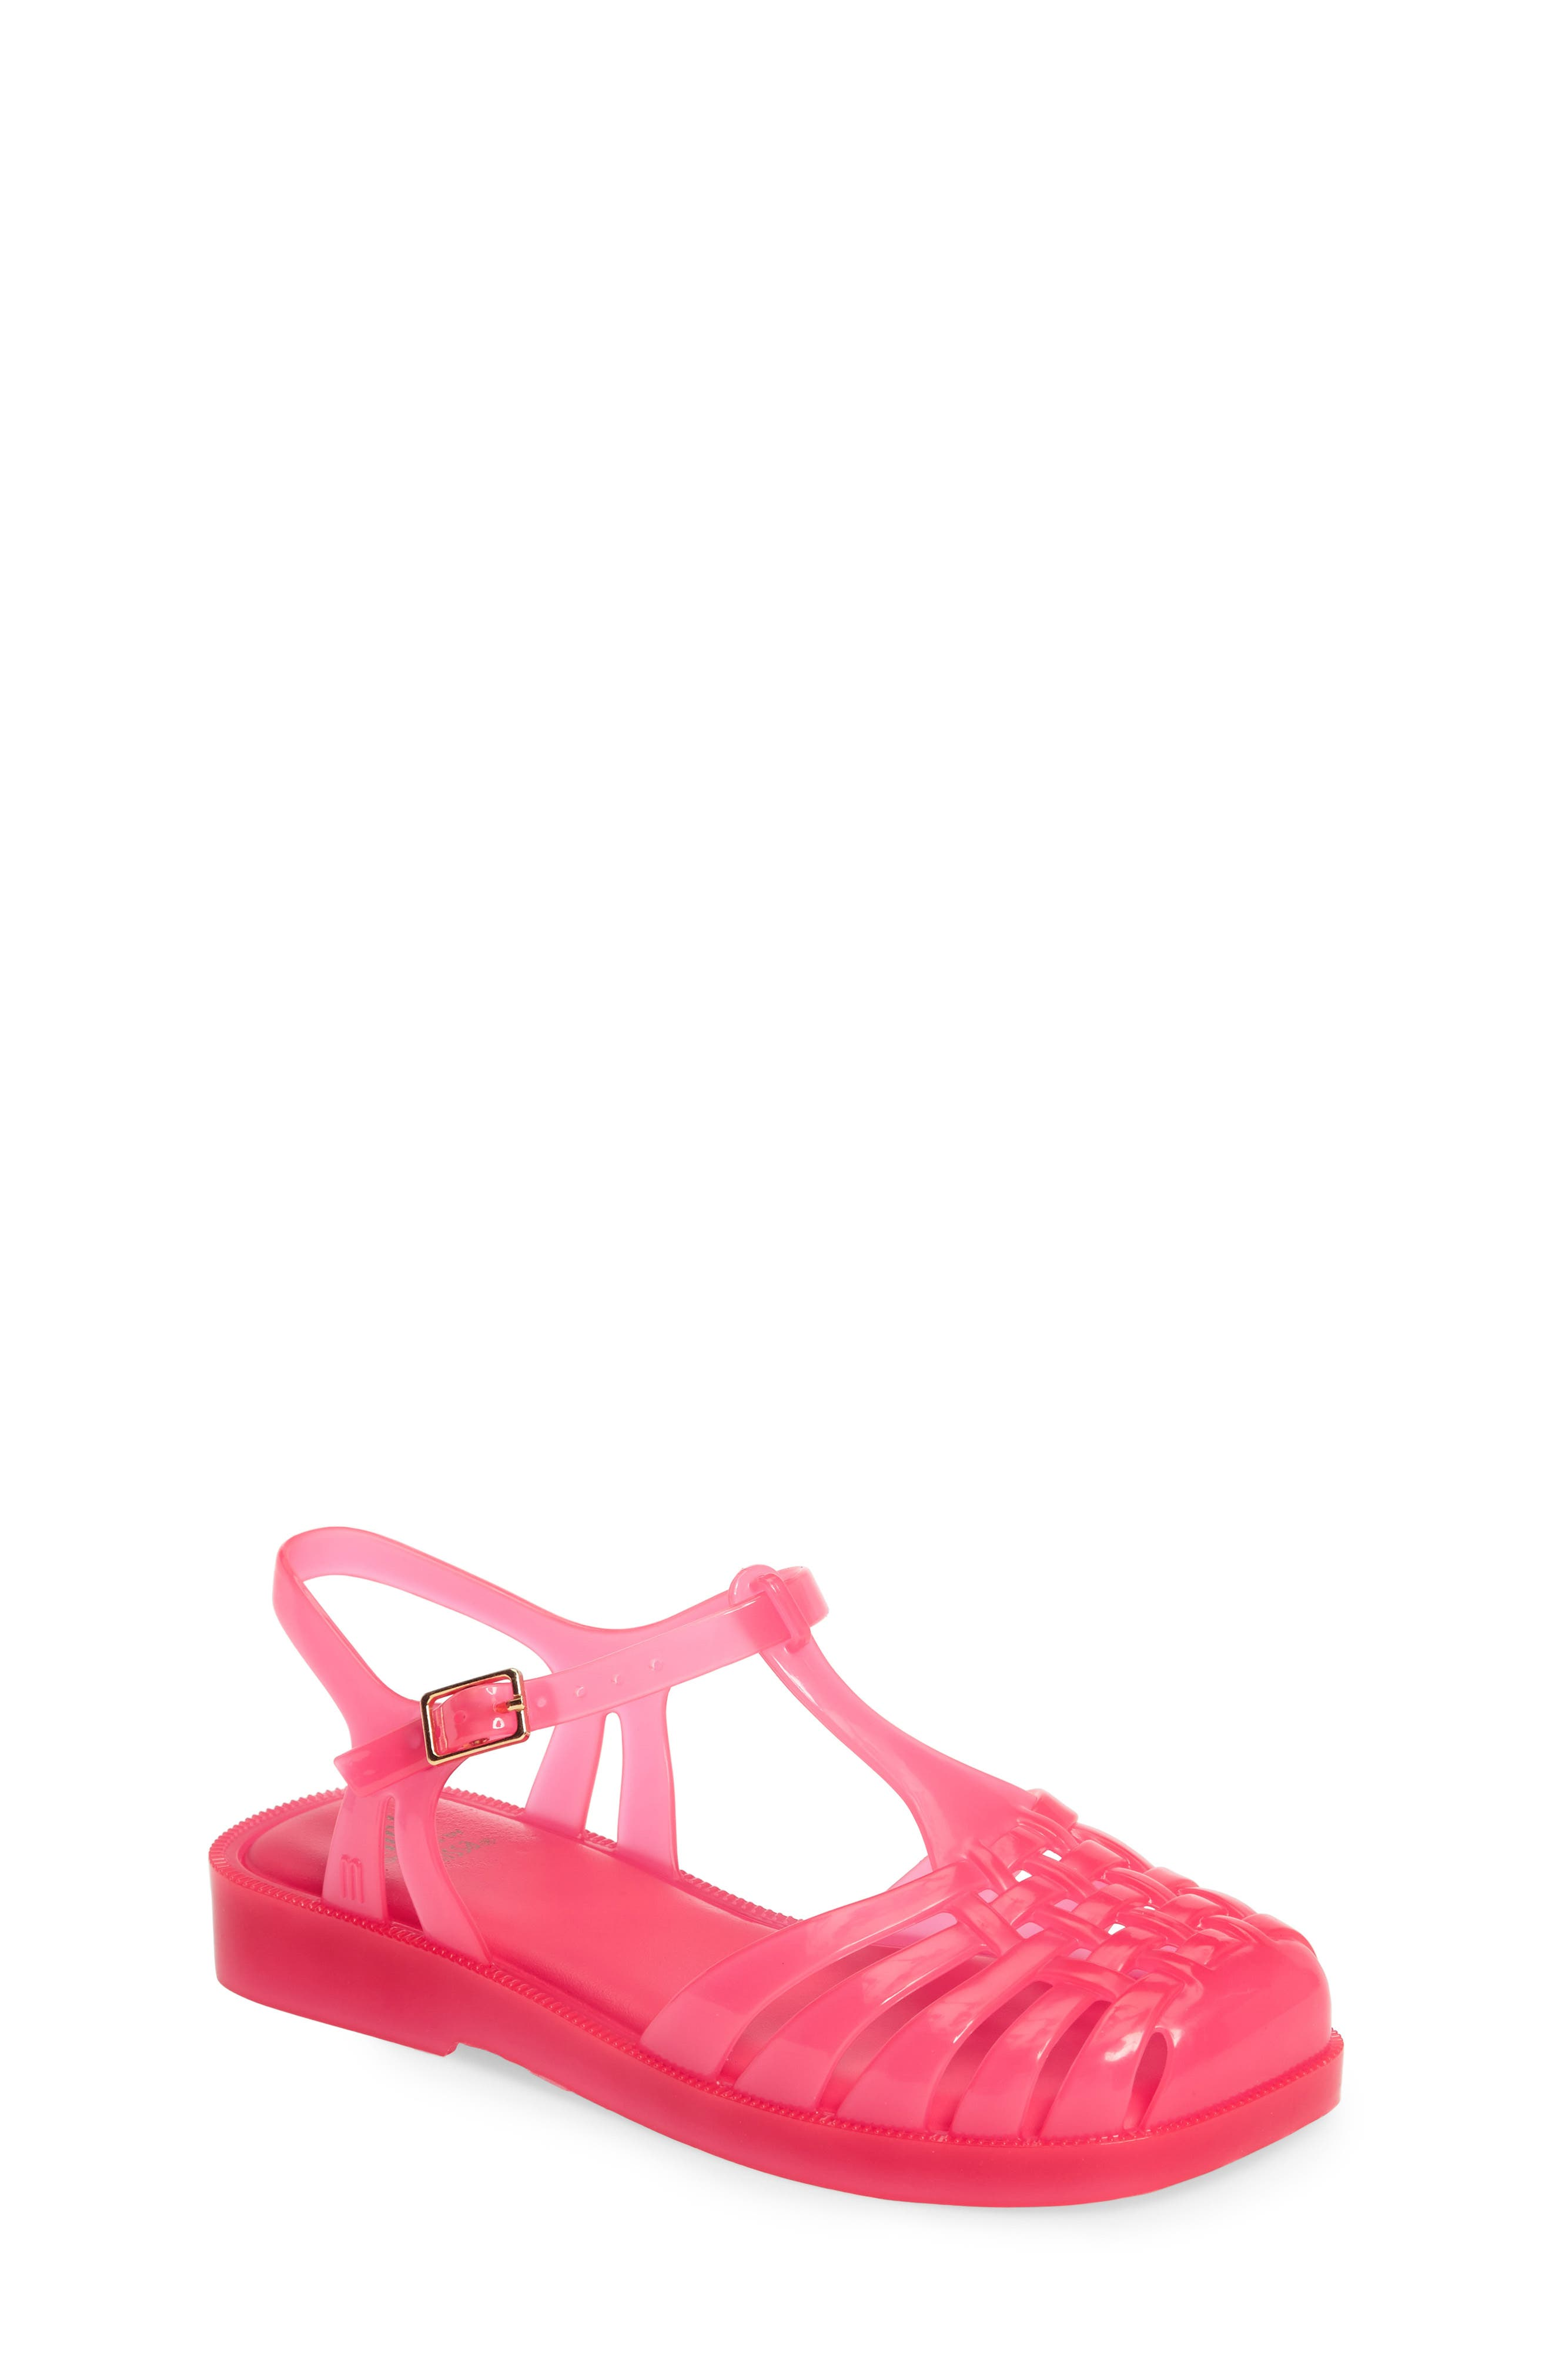 Main Image - Mel by Melissa Aranha Quadrada Sandal (Toddler & Little Kid)